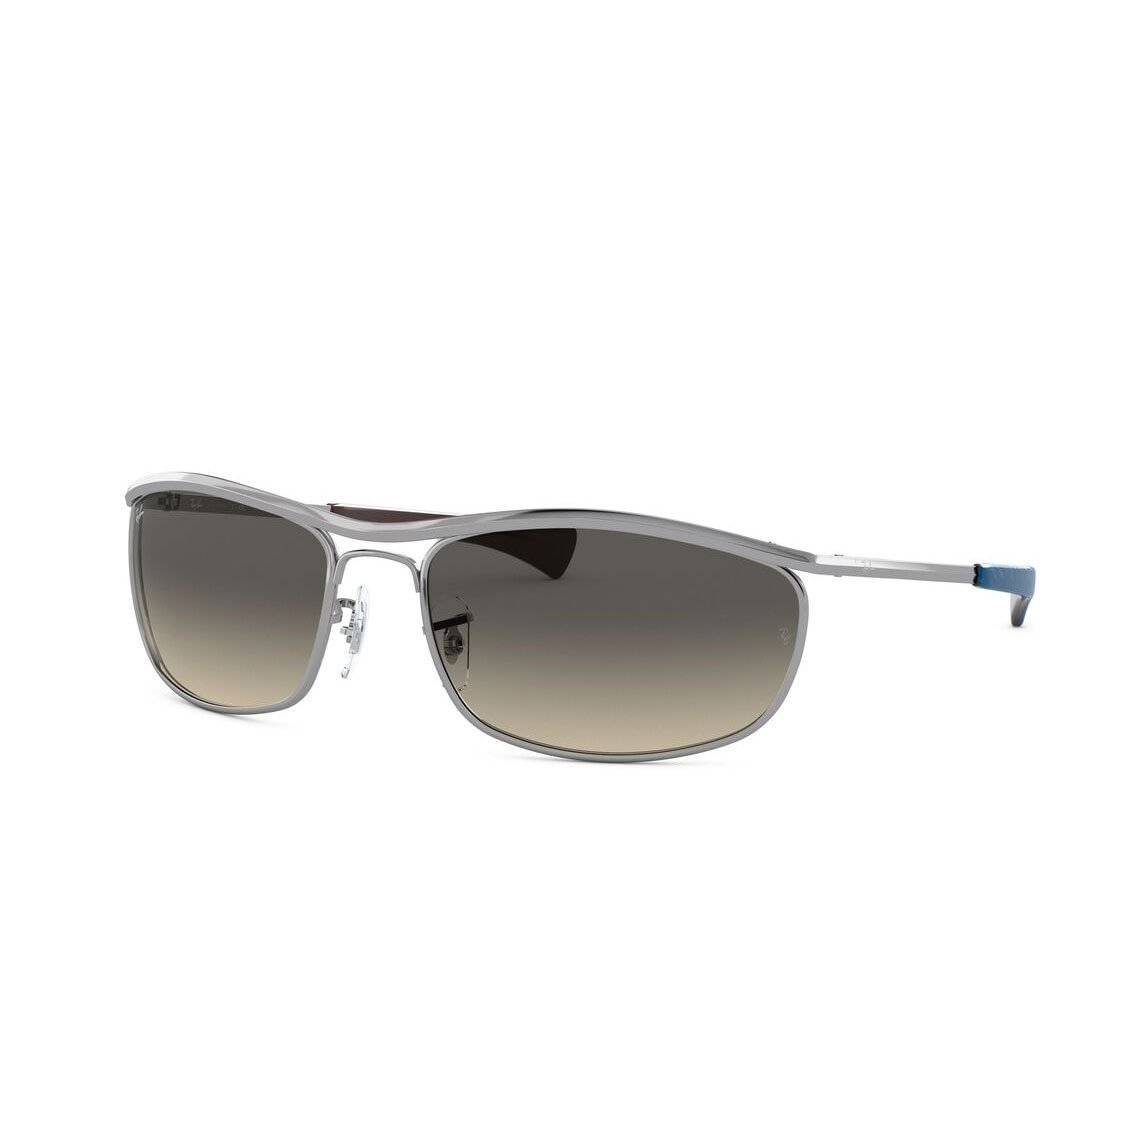 Ray-Ban Olympian I Deluxe RB3119M 004/32 62